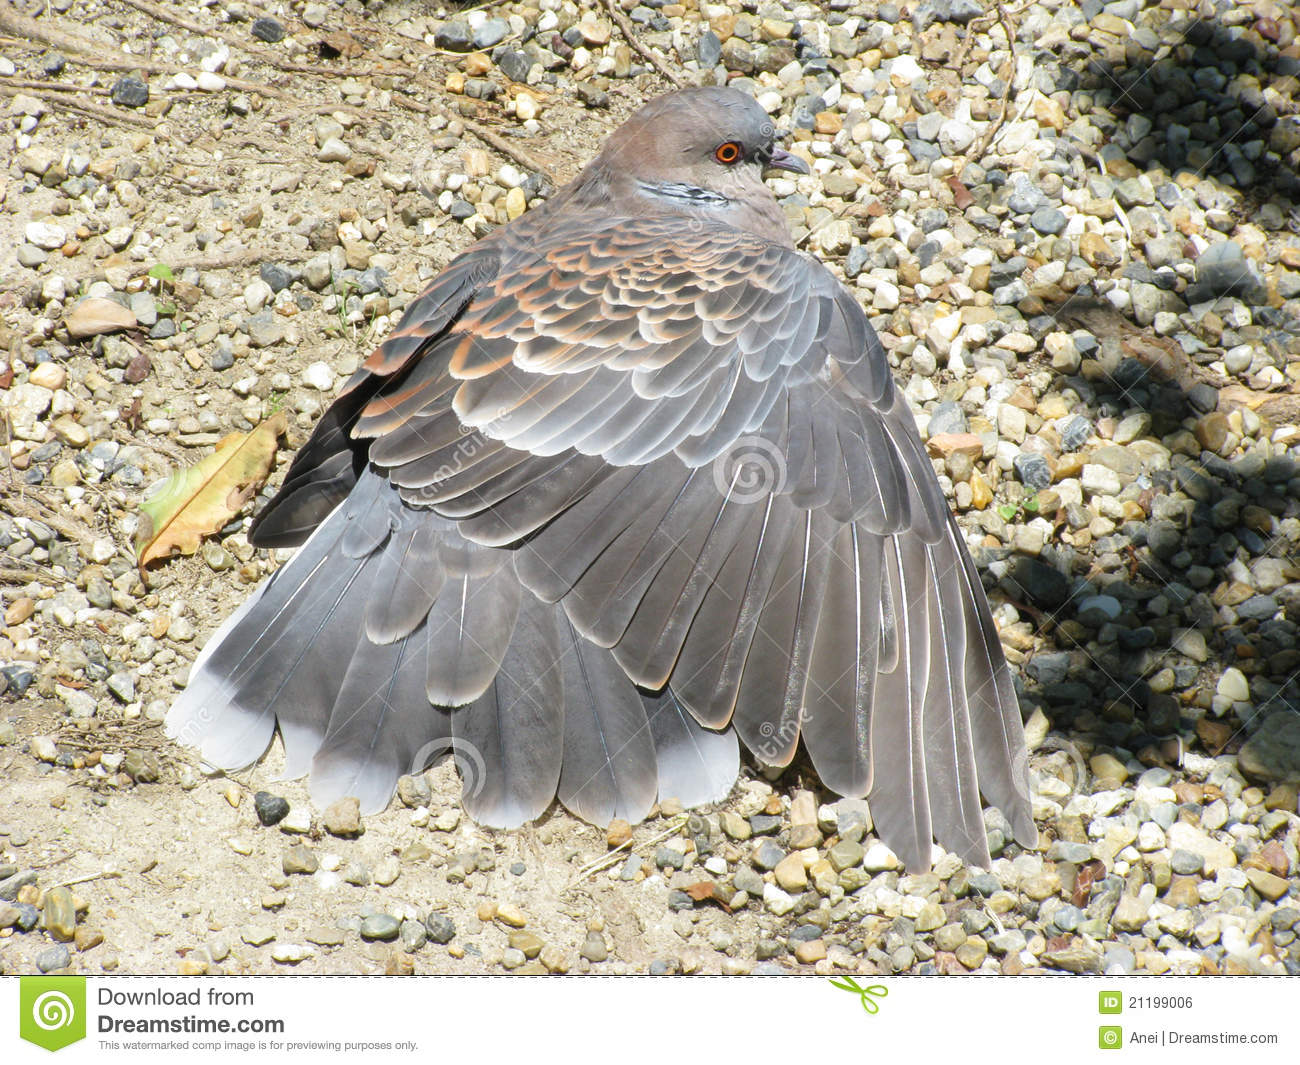 Pigeon with a spread wing